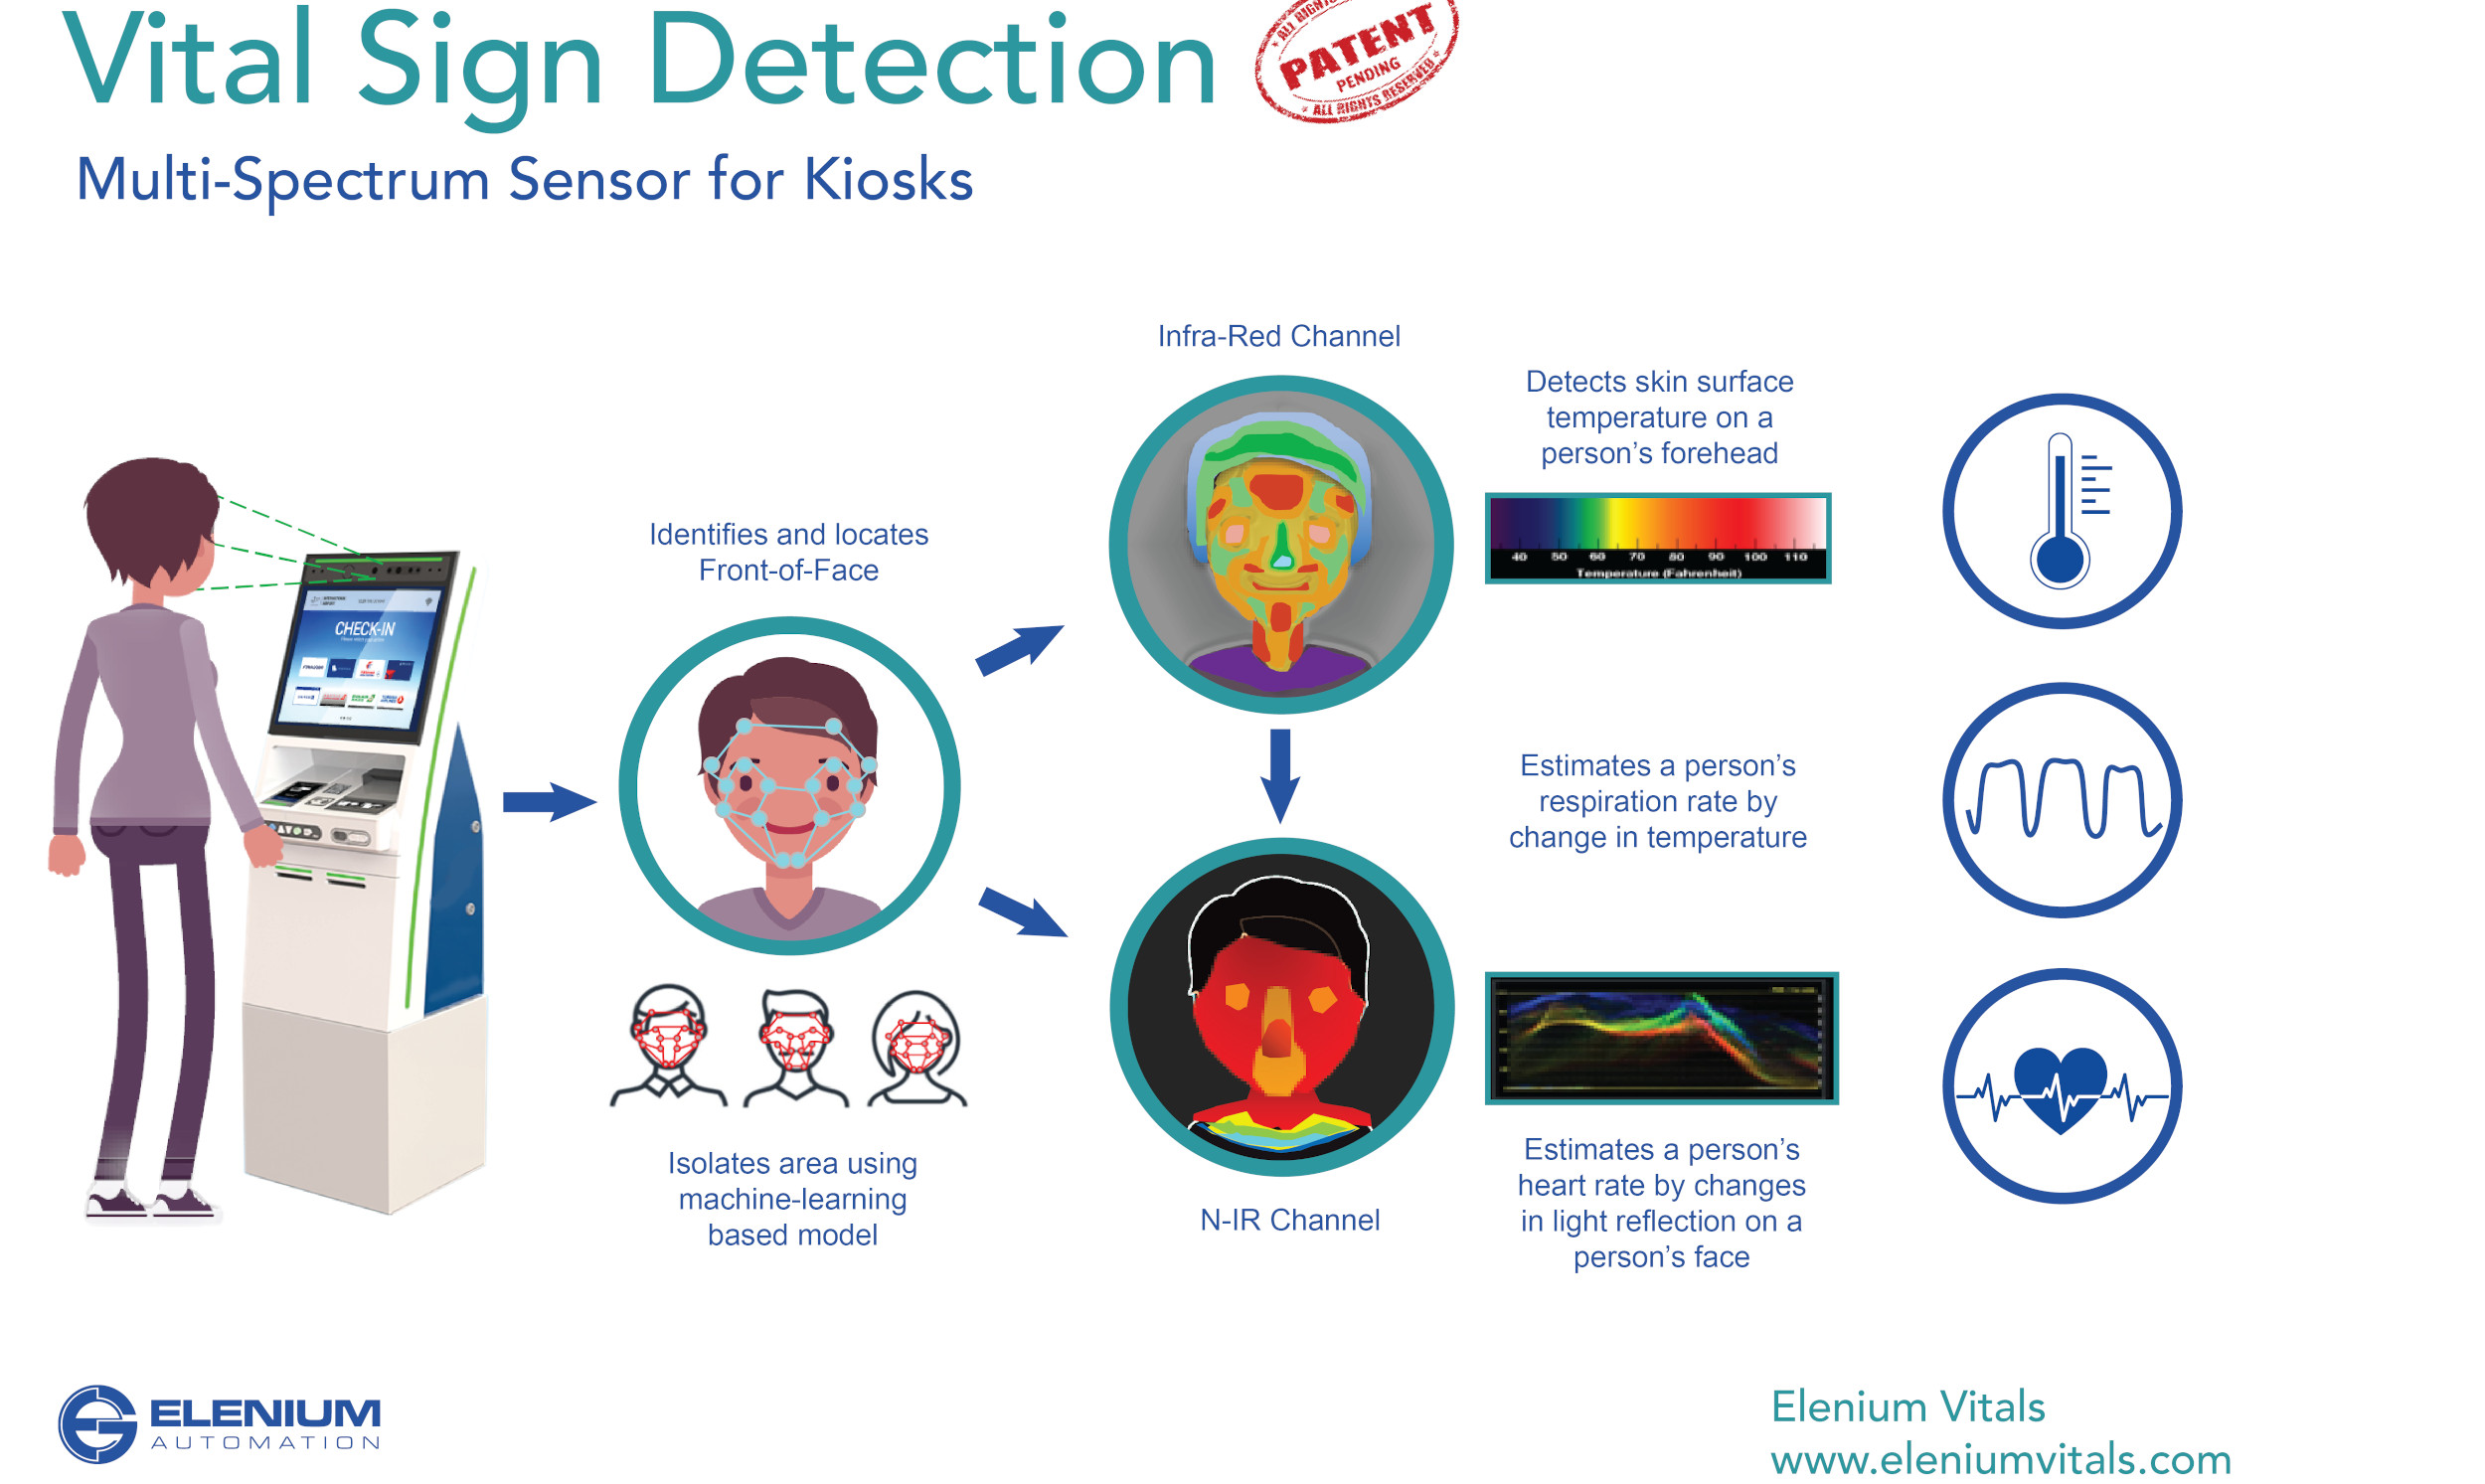 Vital sign detection